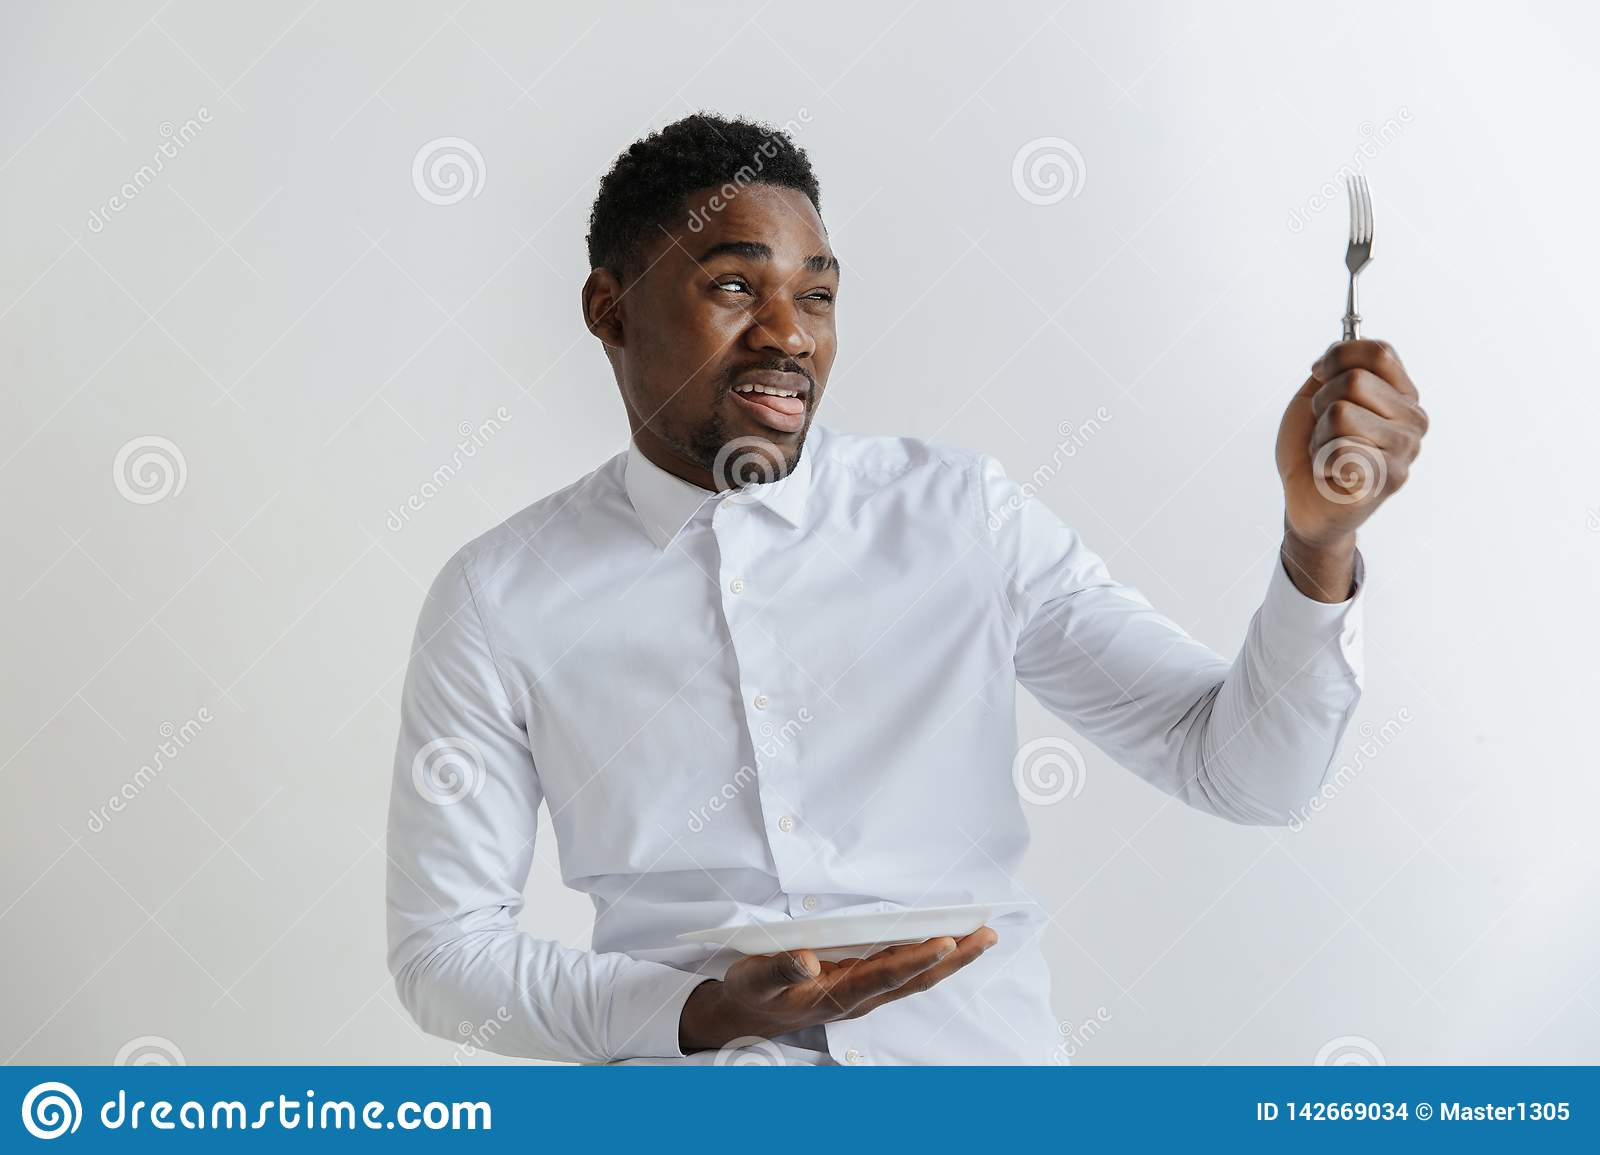 Young african american guy holding empty dish and fork with disgusting facial expression isolated on grey background.